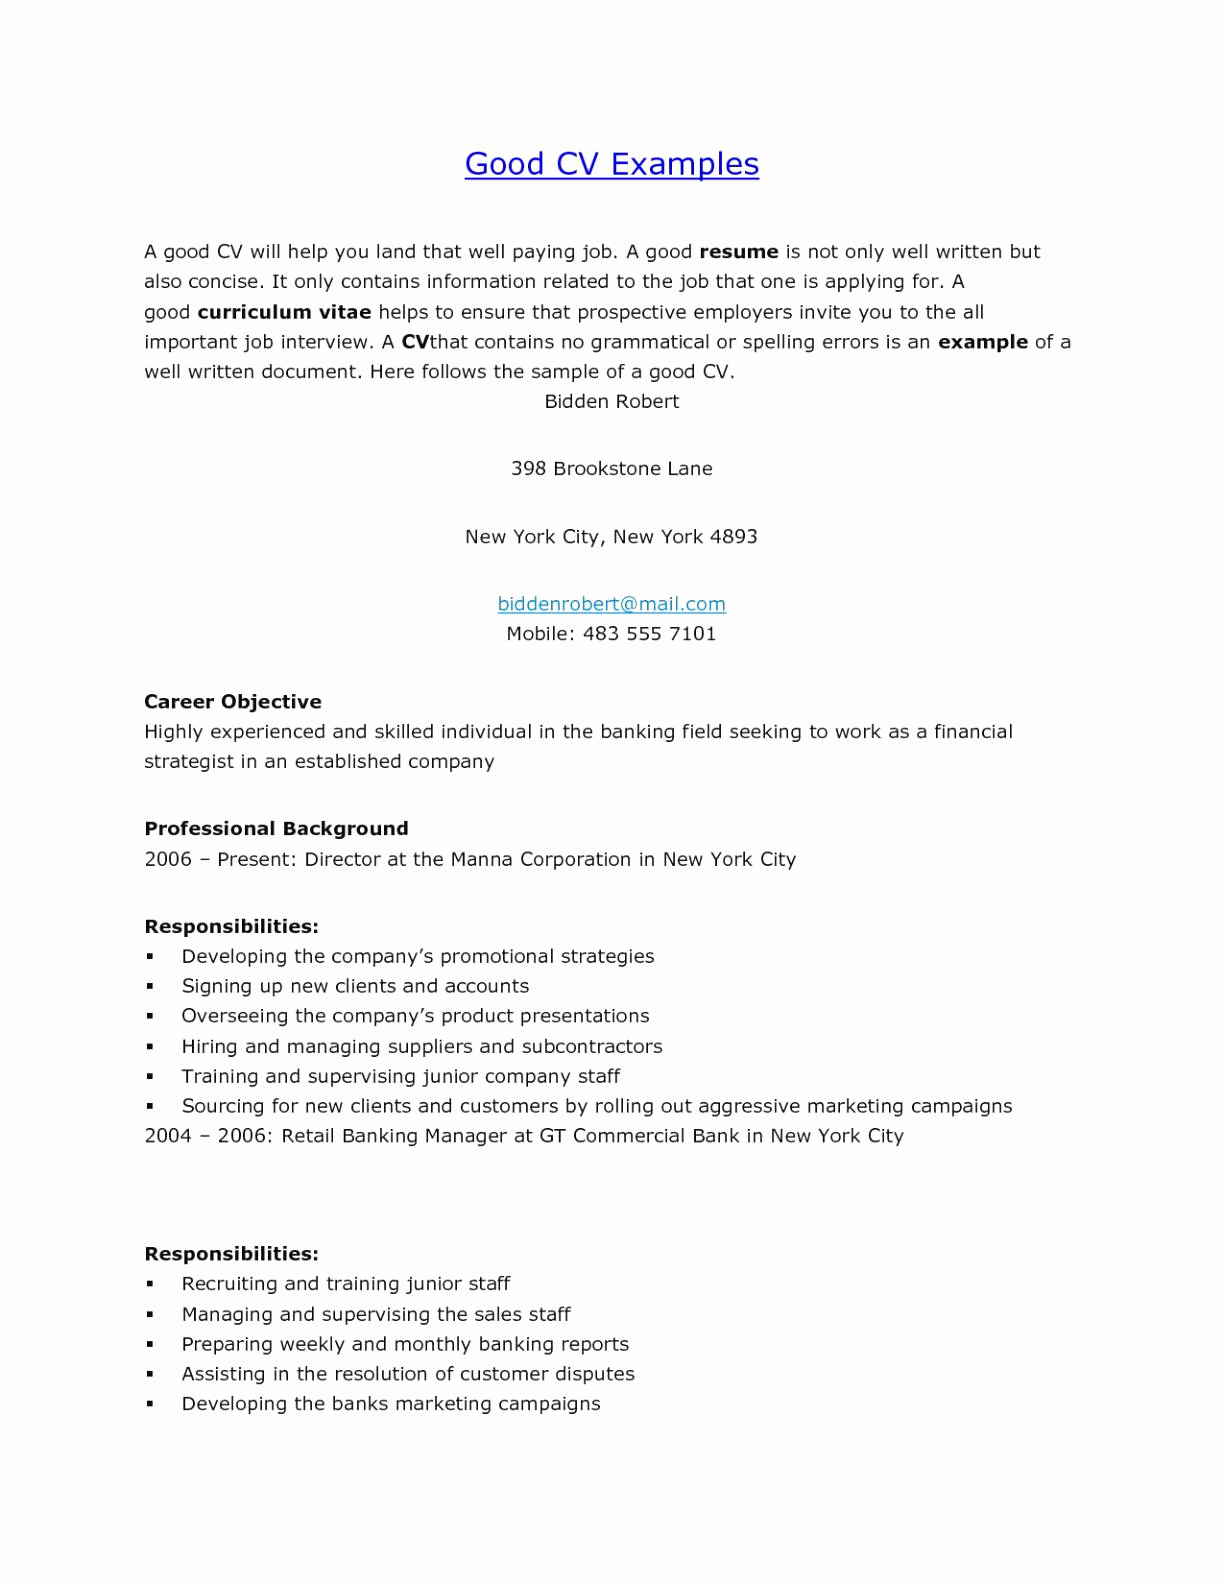 Cover Letter Template for Retail Job - Retail Cover Letter Example New What Means Cover Letter Best Cover